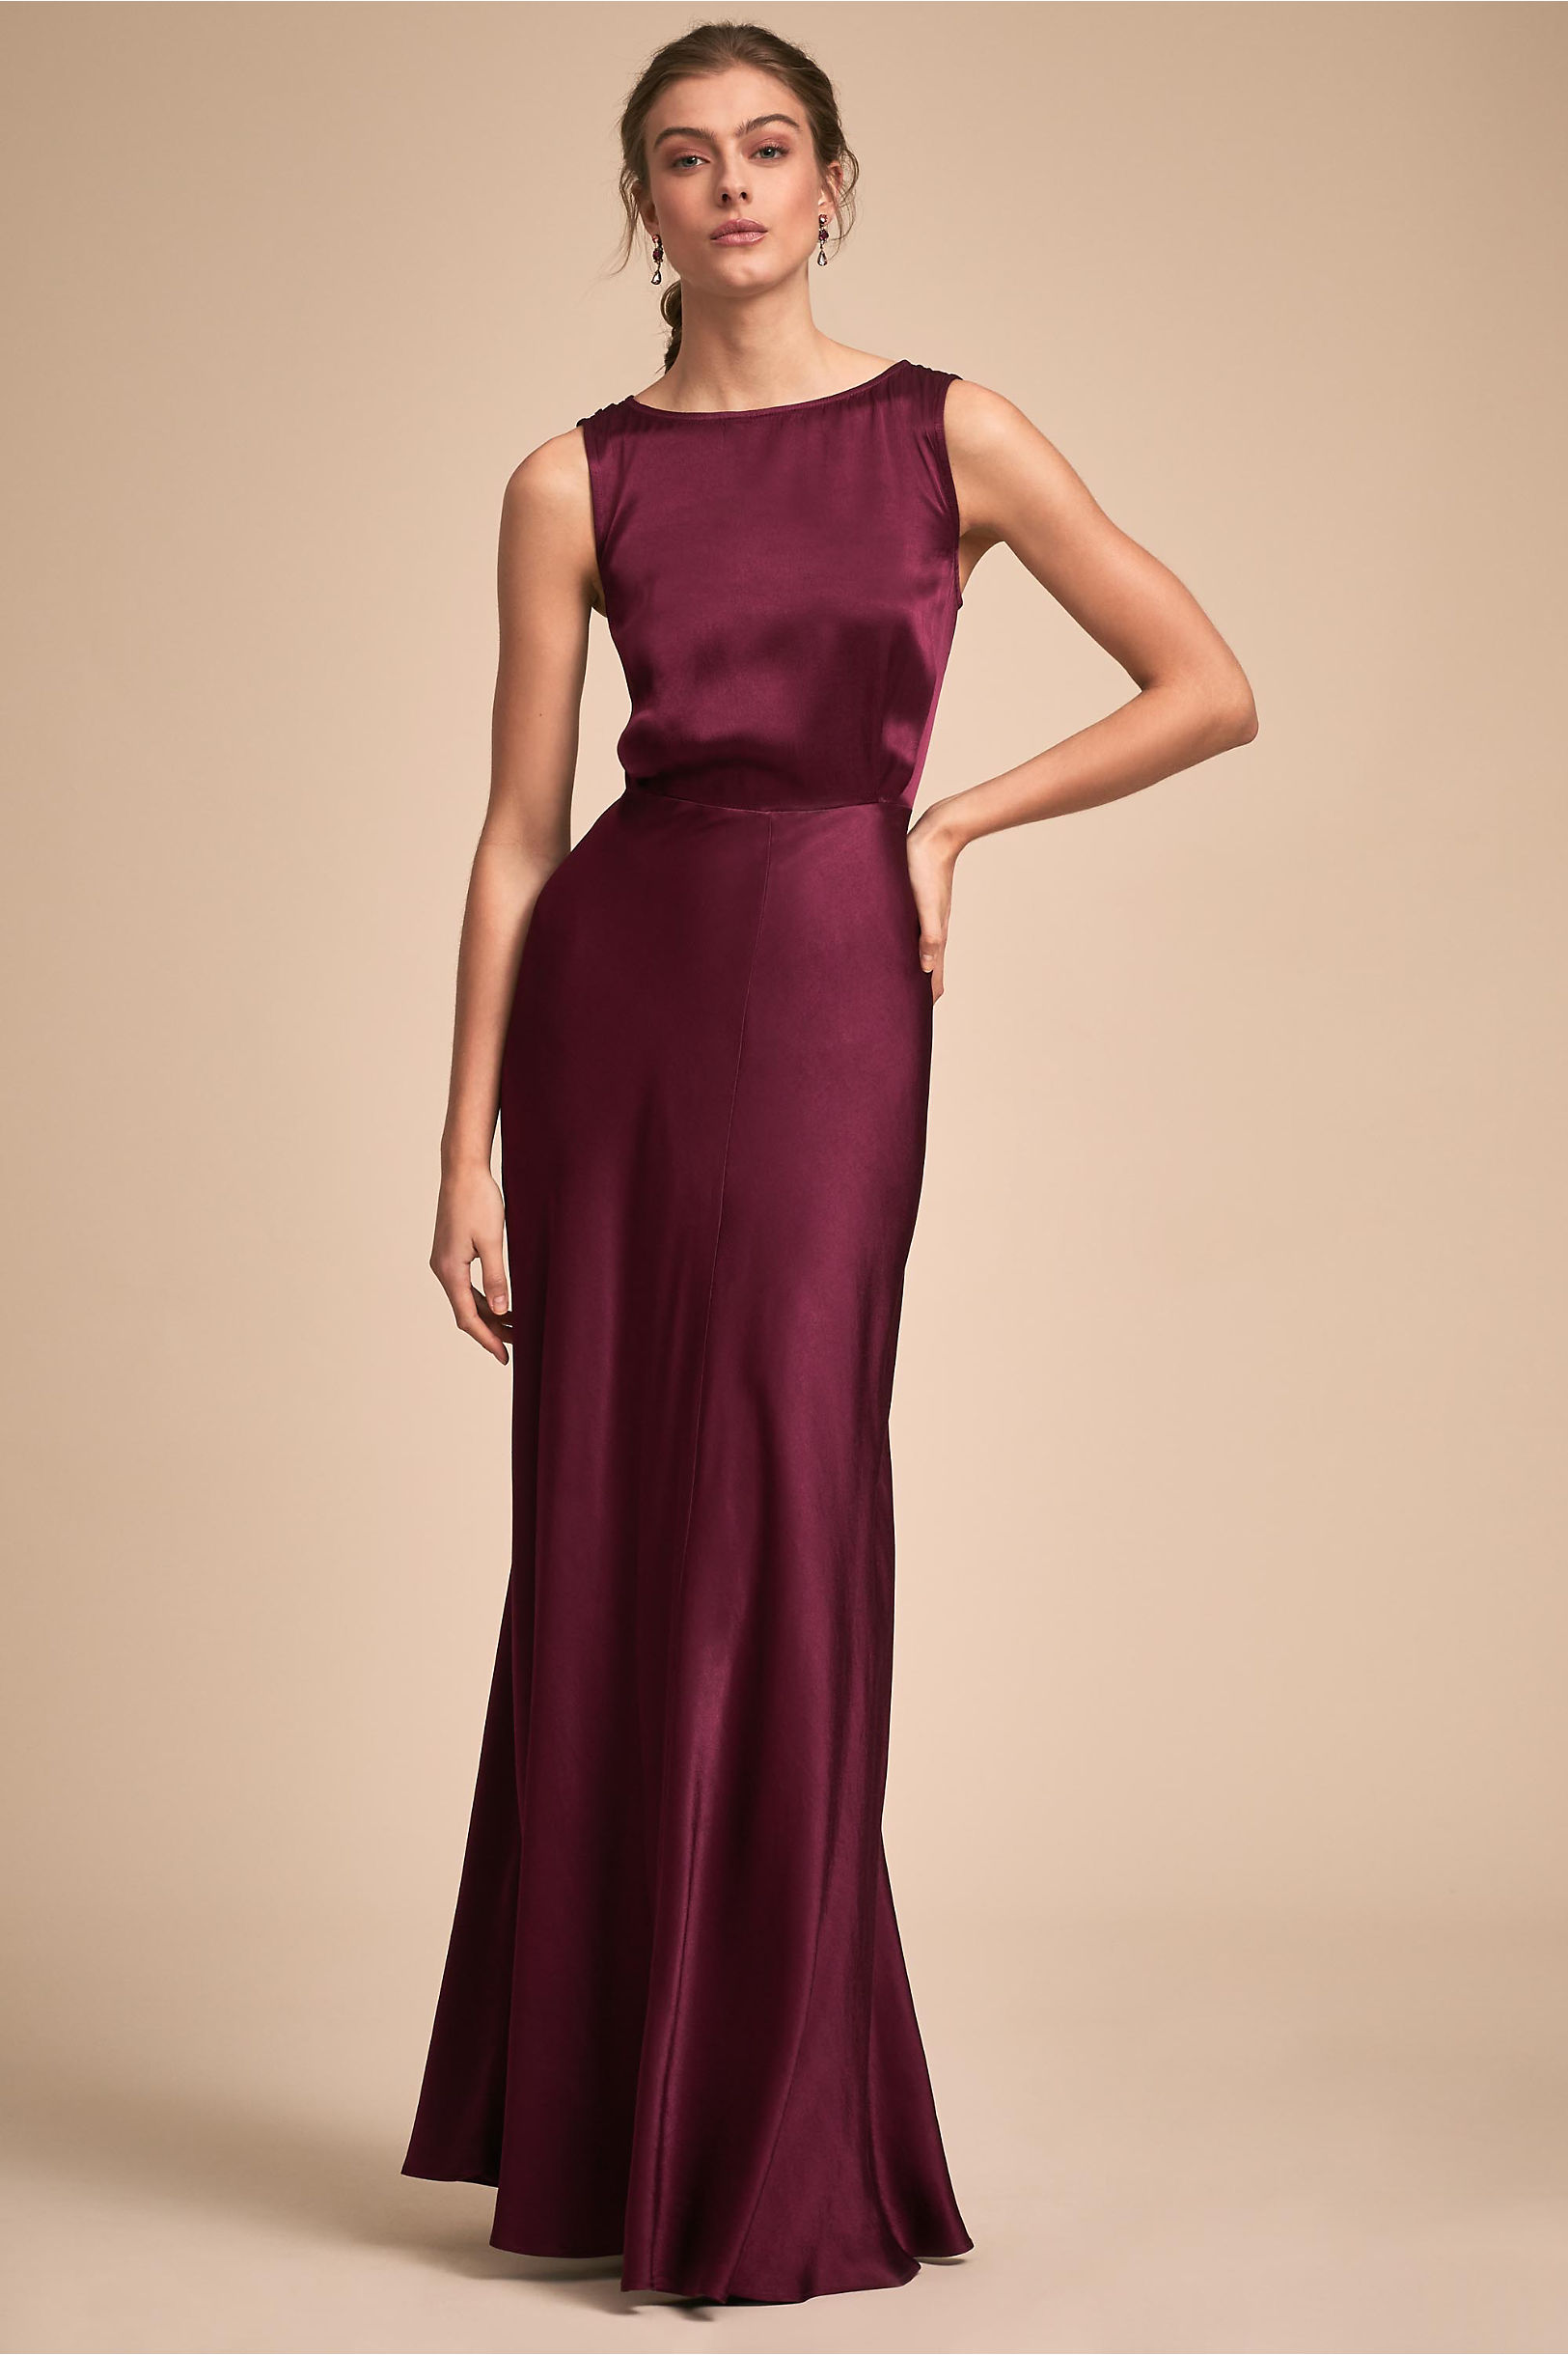 Sleek and luxurious Gown Beautifulfeed